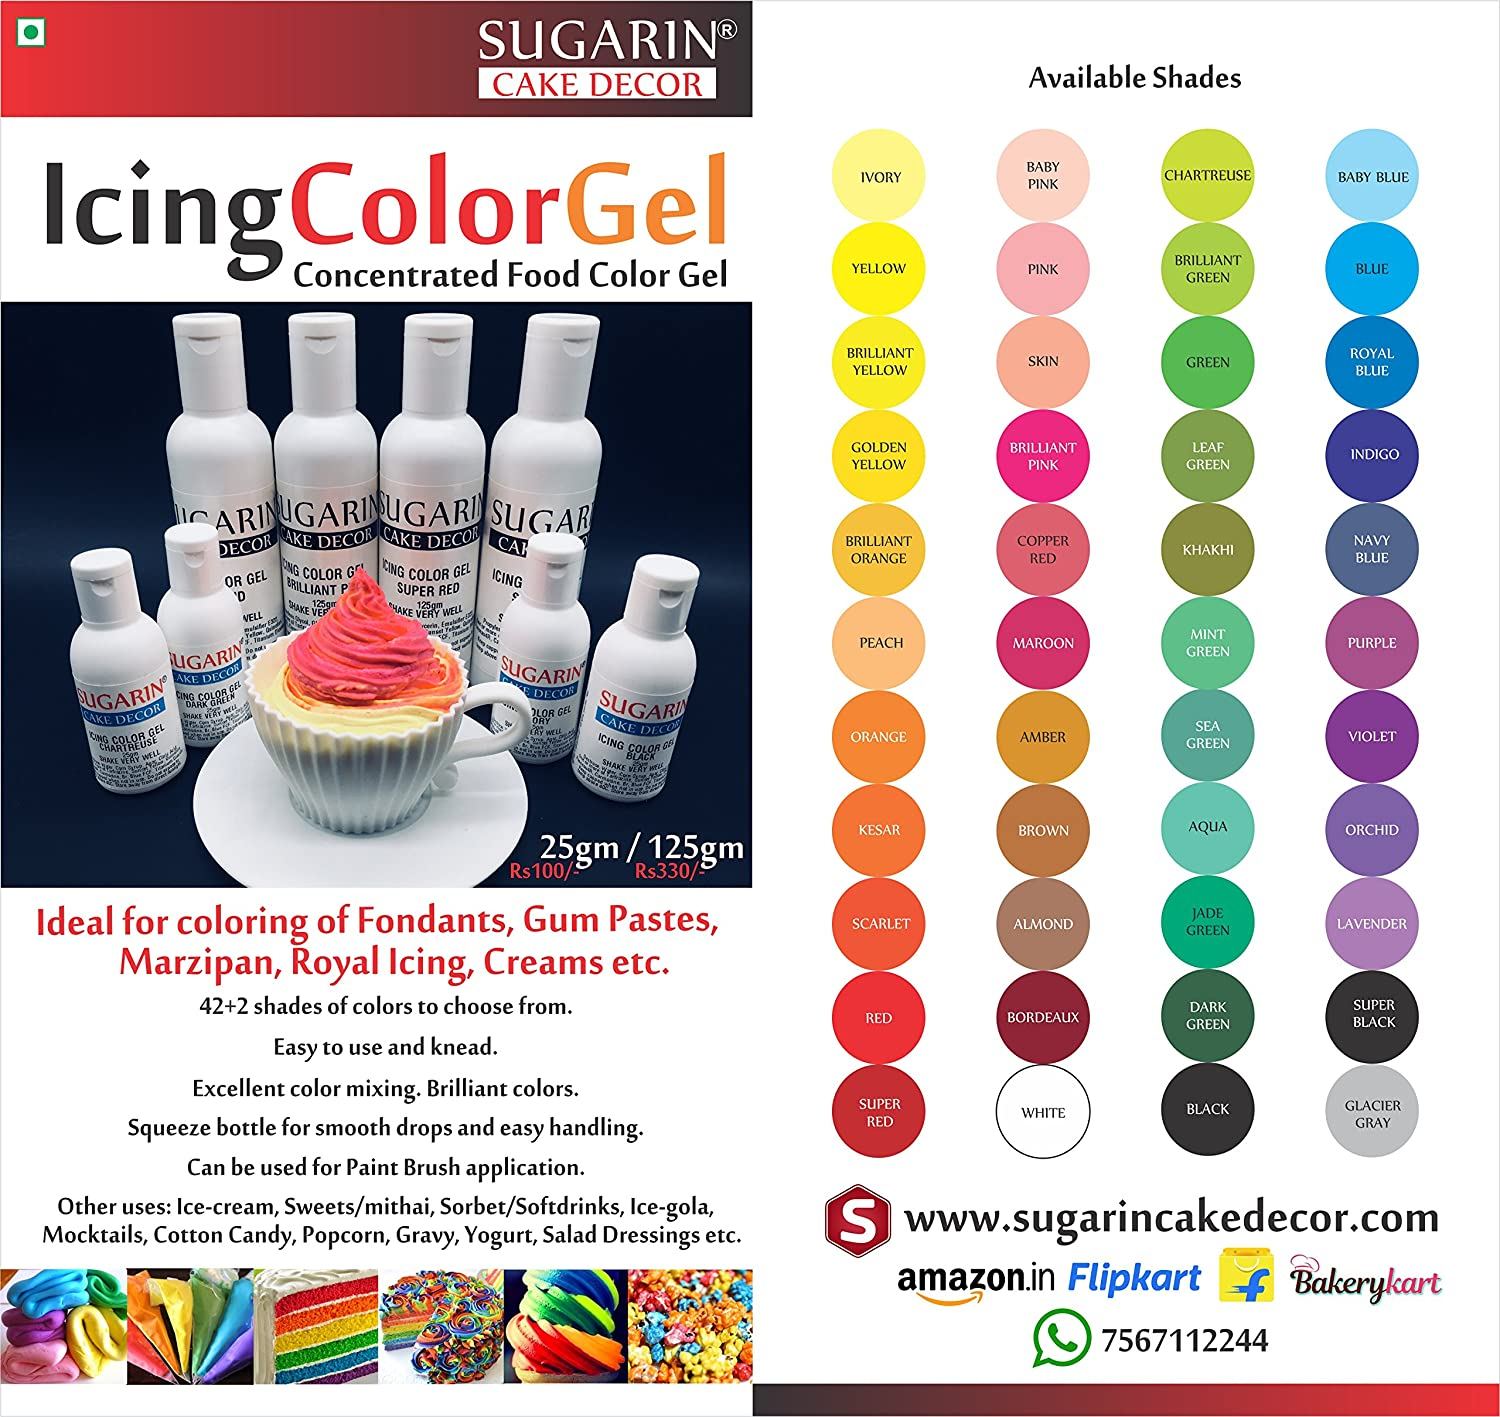 Sugarin Icing Color Gel For Fondant, Red, 25 Gram Amazonin